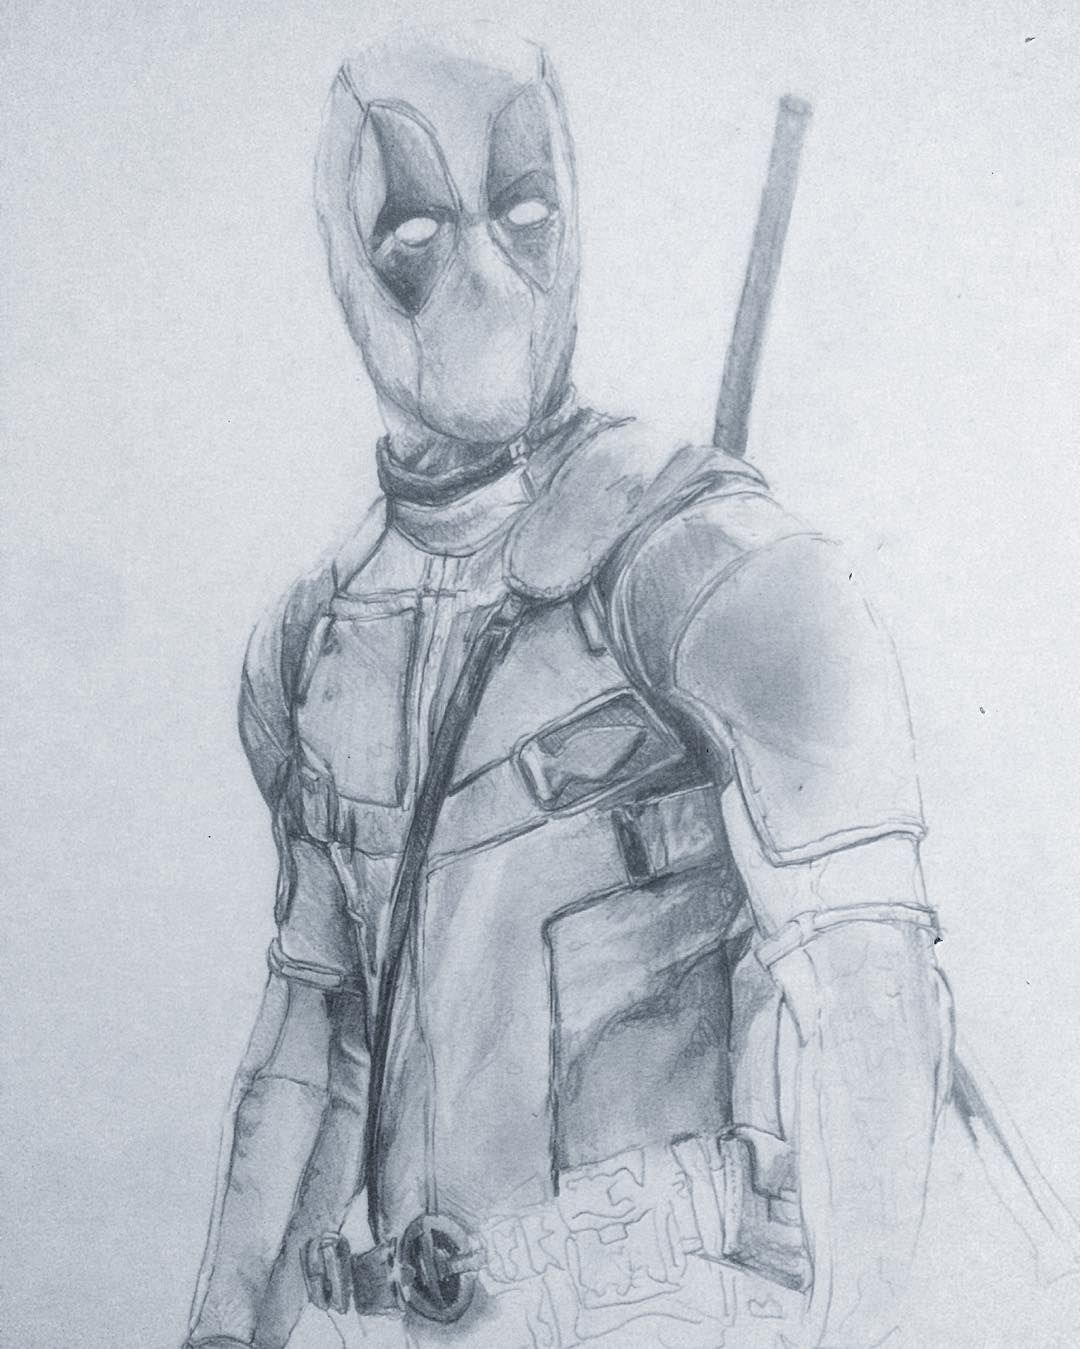 Finishing up deadpool drawing draw drawing graphite